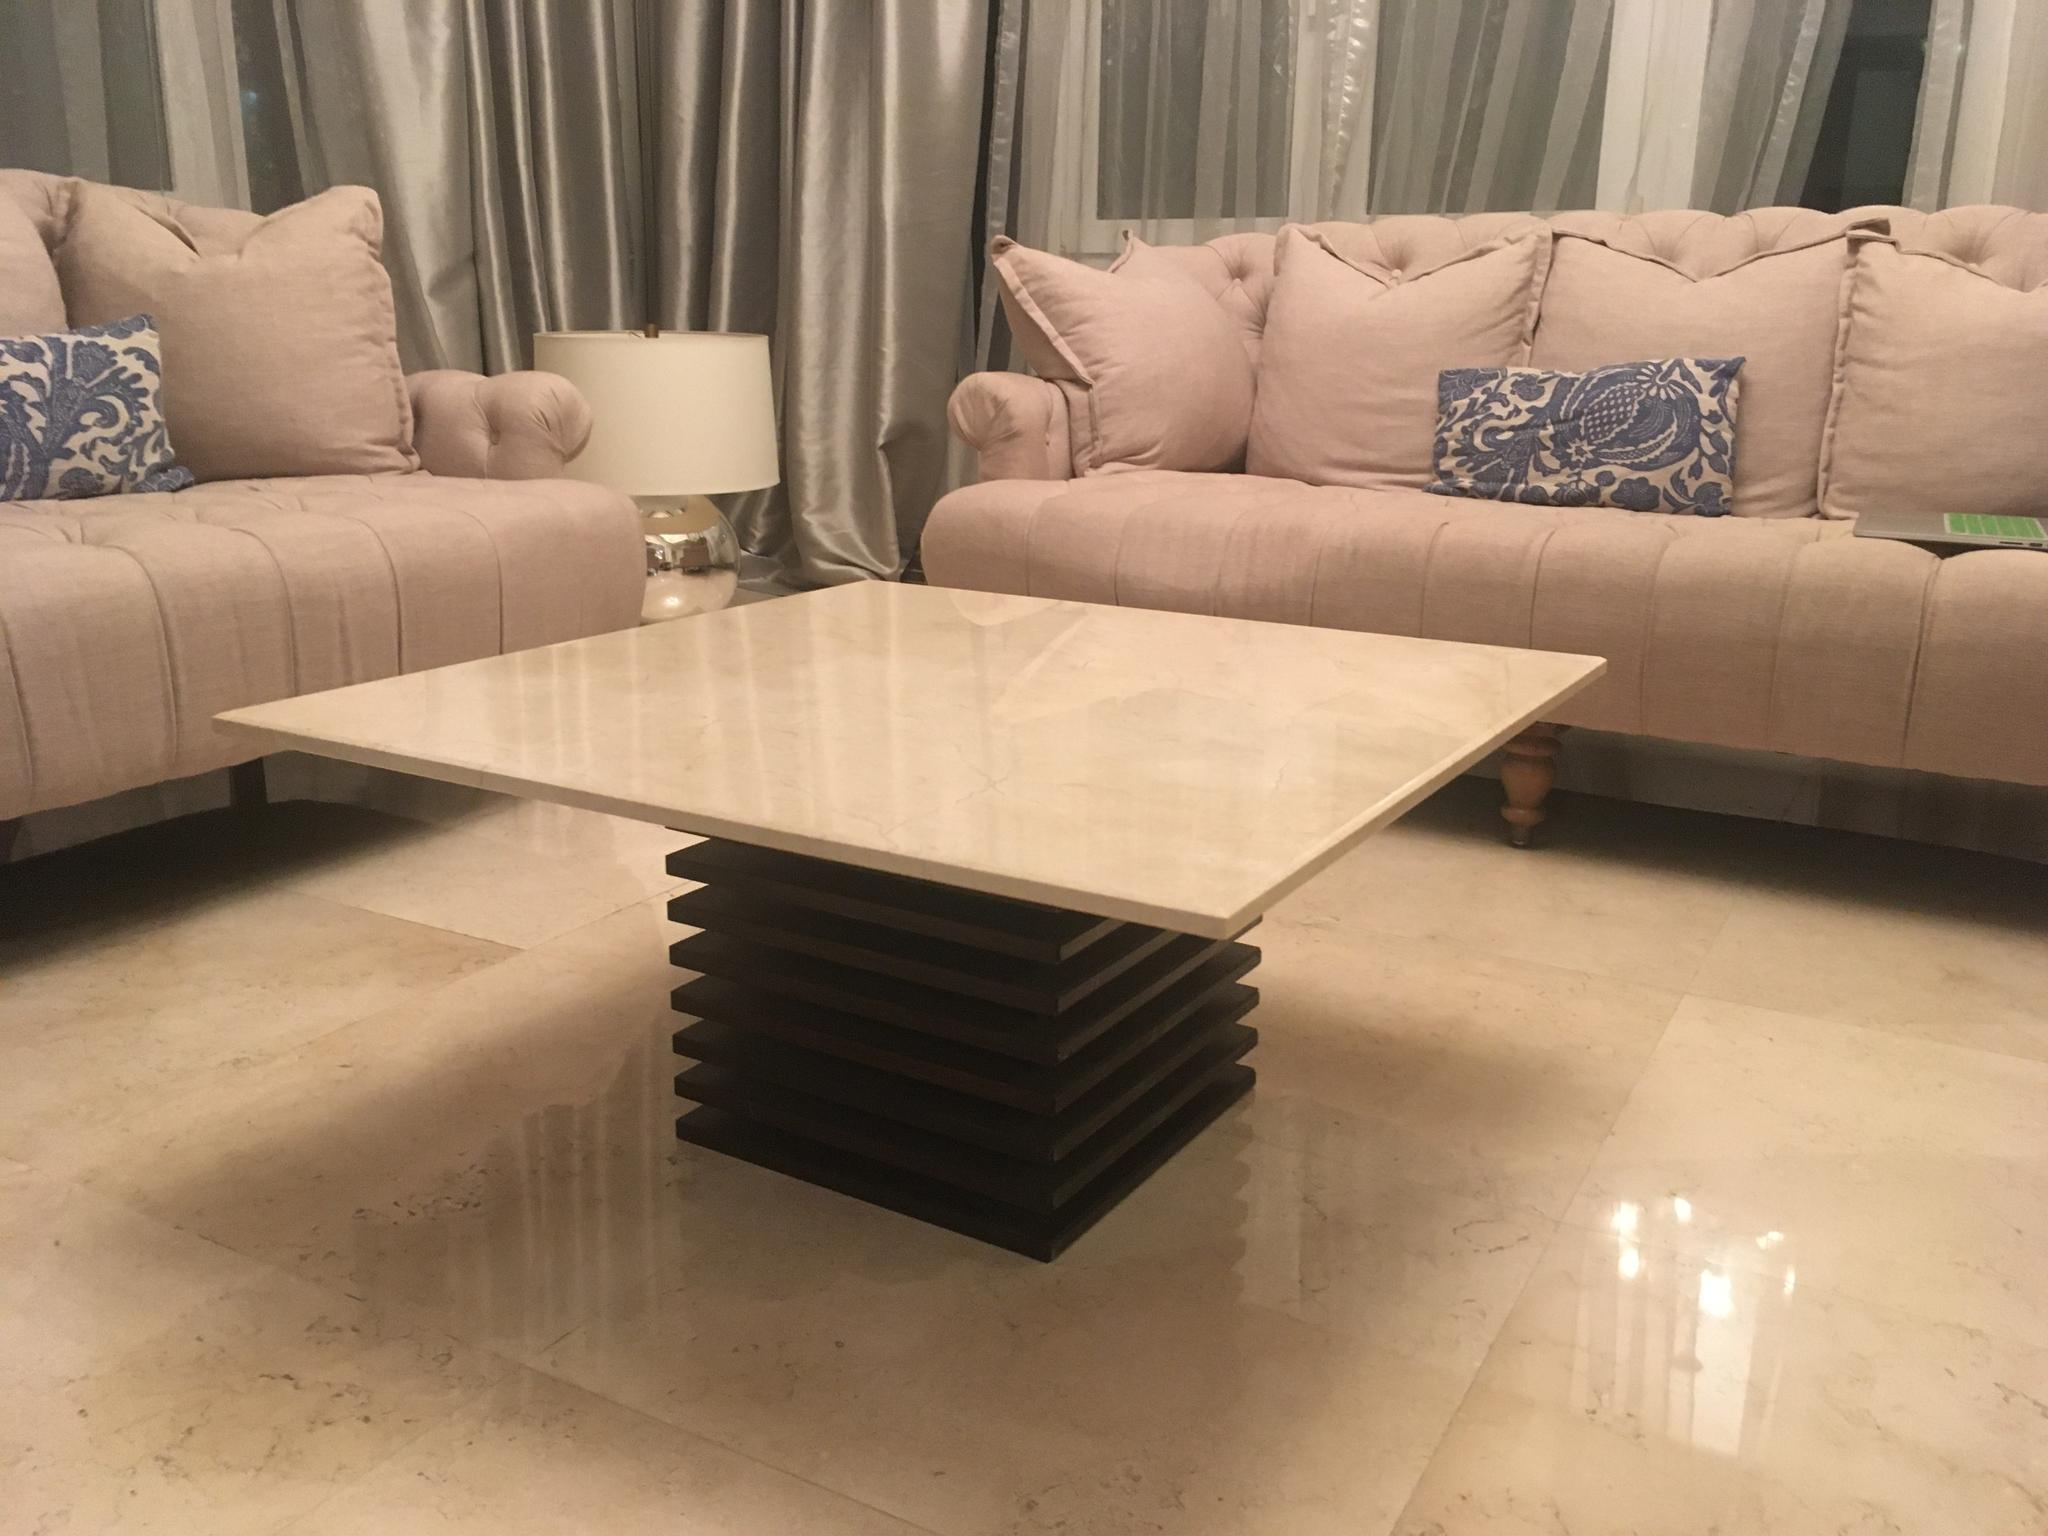 Black Marble Top Coffee Table (Not White like in t